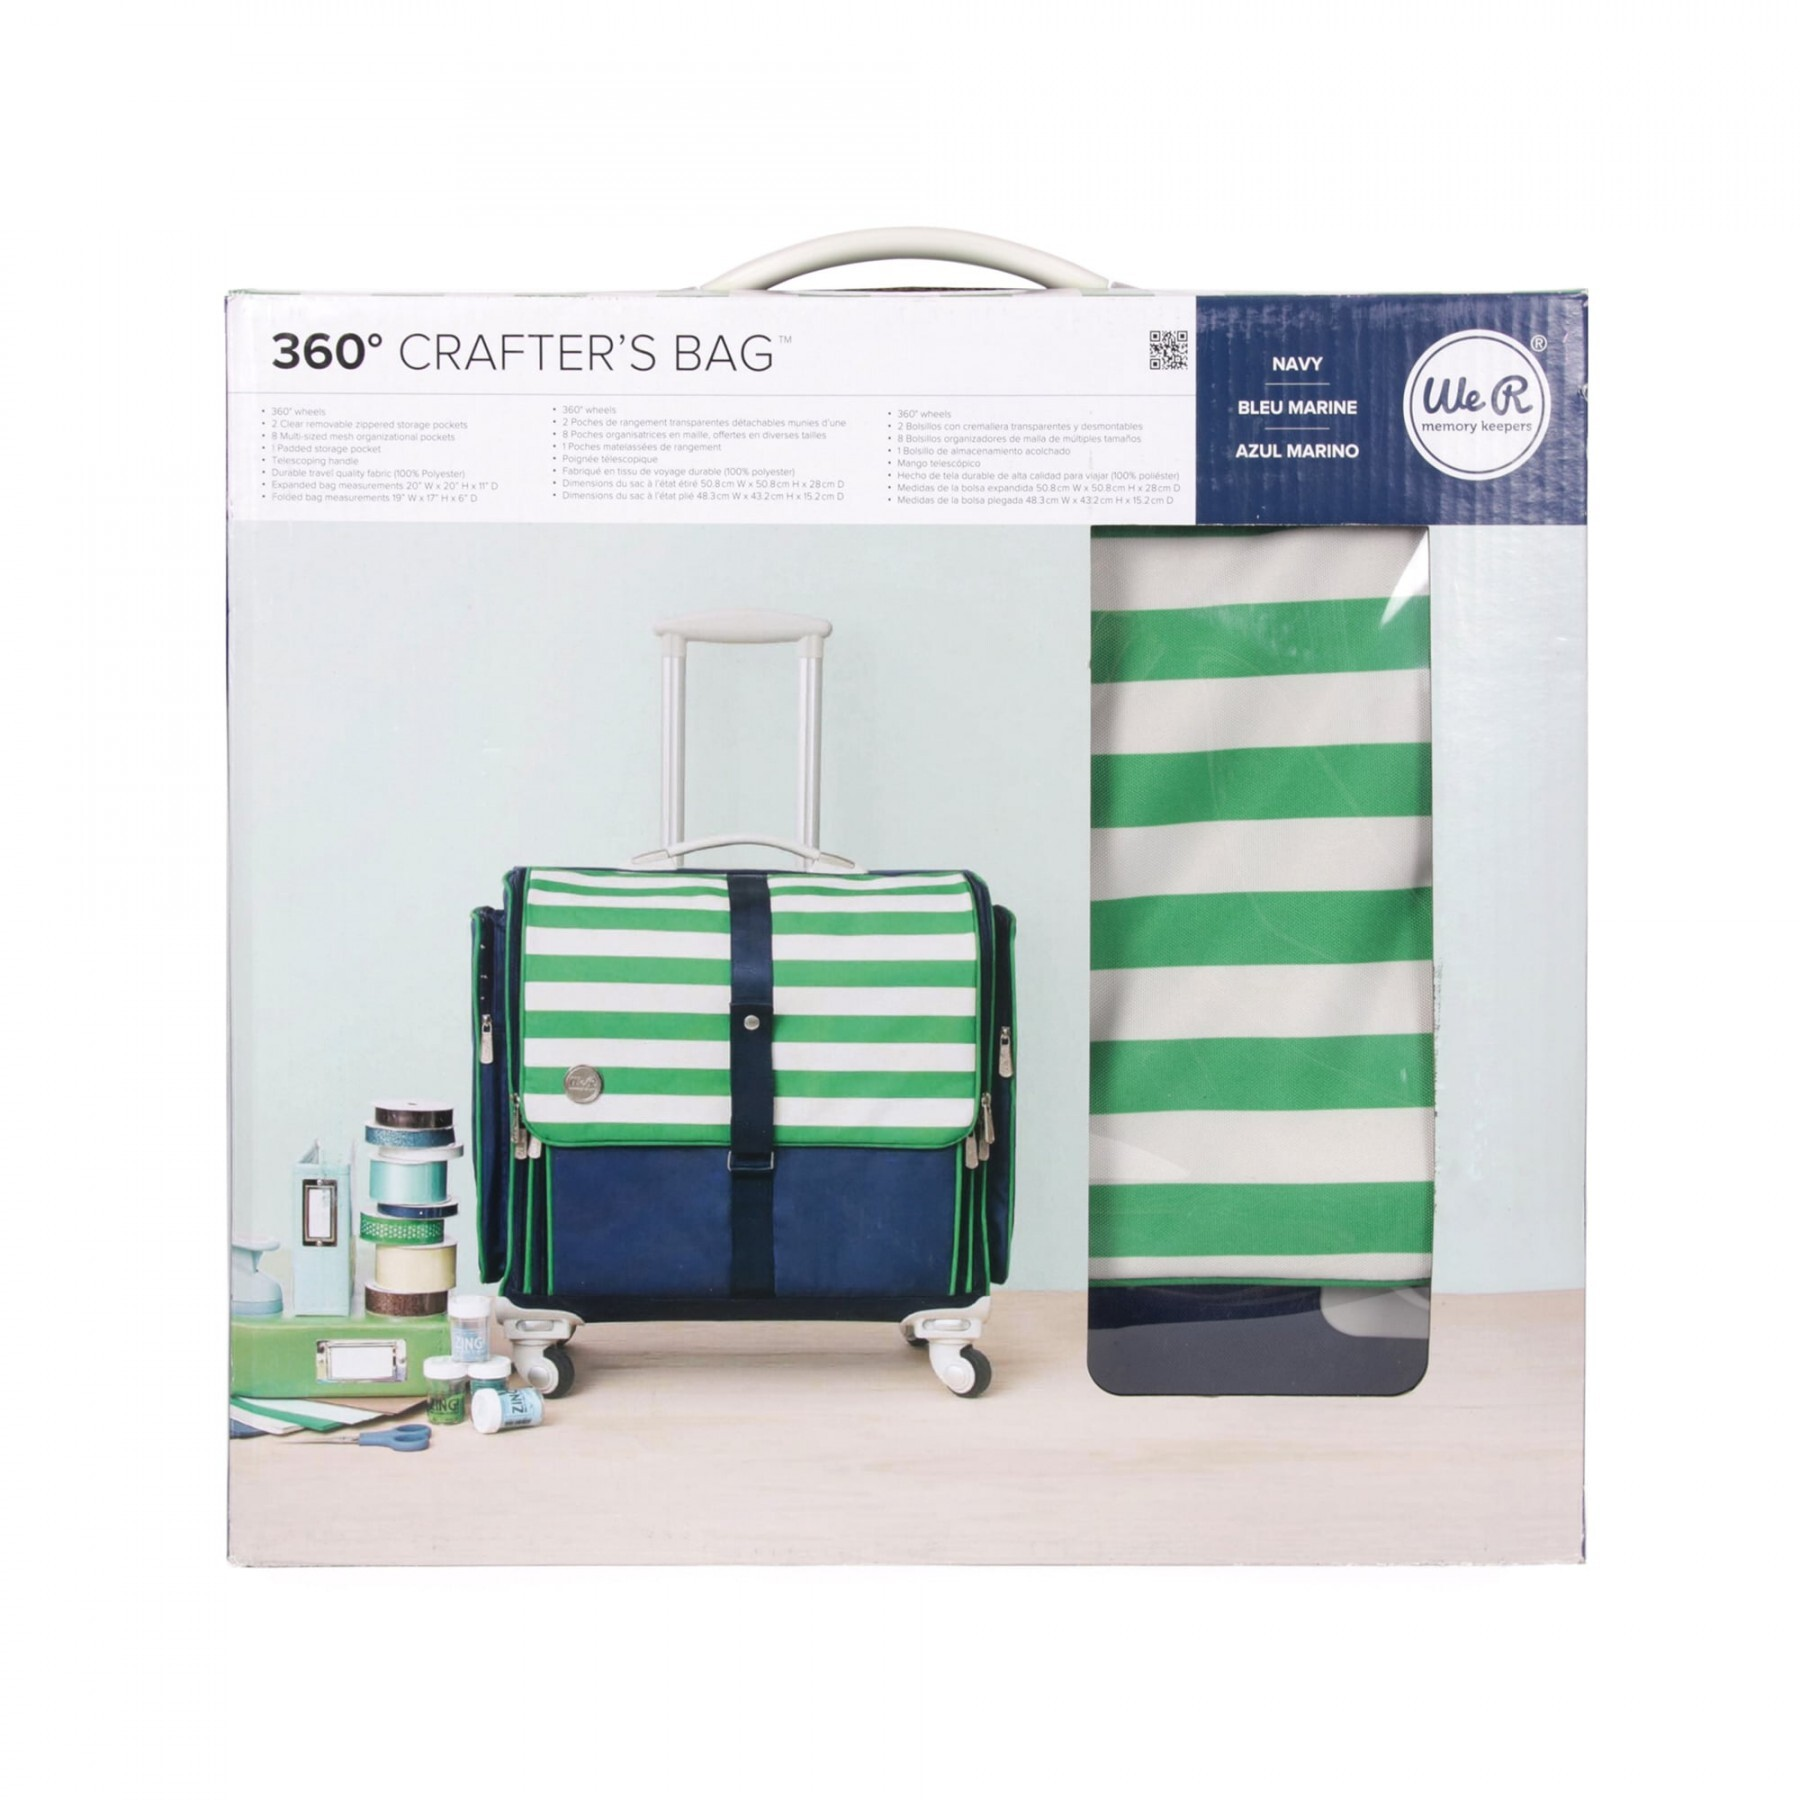 Mala Organizadora 360 Craftes Bag - Navy ( We R Memory Keepers )